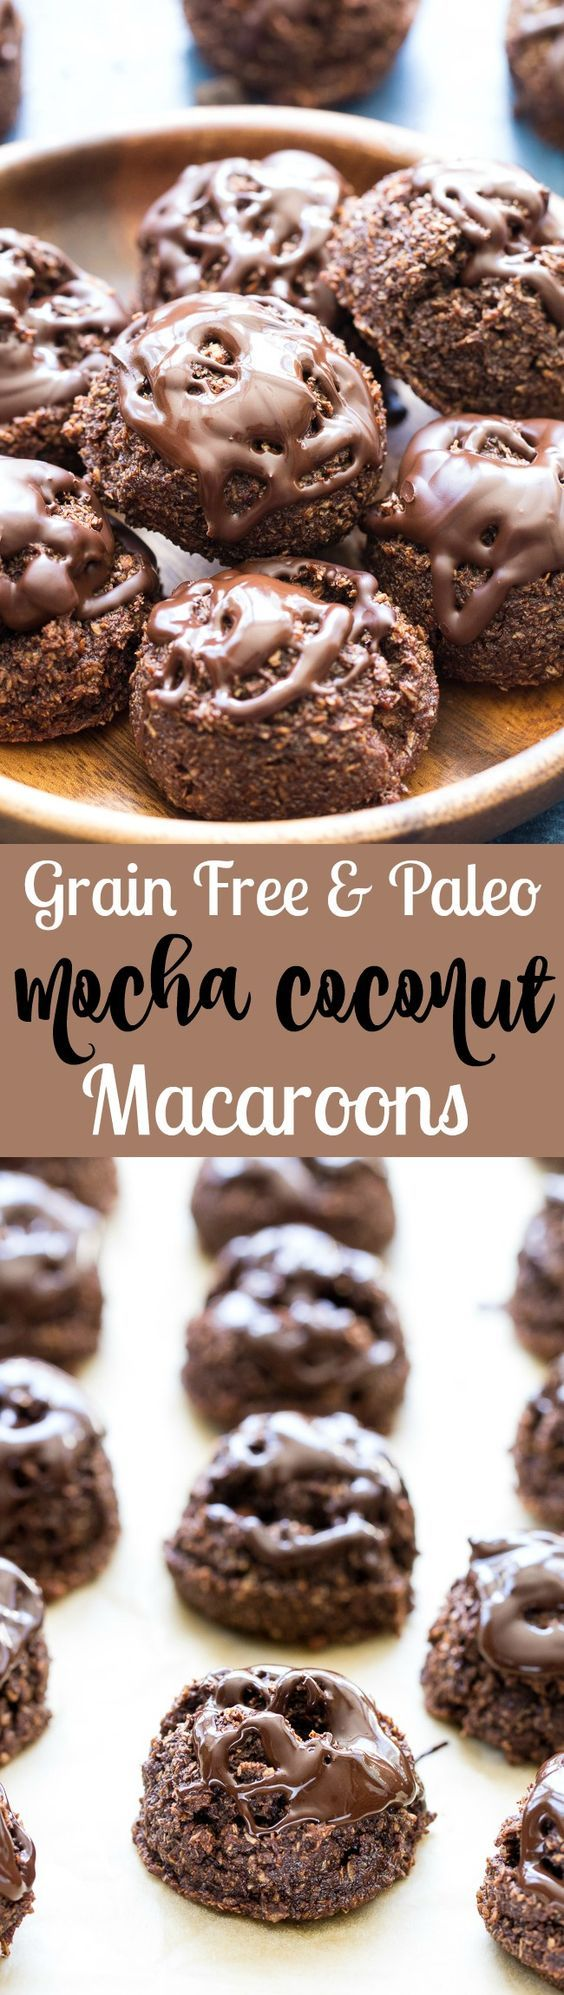 These easy to make Paleo Mocha Coconut Macaroons are a deliciously decadent, yet healthy snack or post-workout treat! Made with wholesome ingredients, grain free, dairy free, and refined sugar free. #allwhiteseggwhites #ad